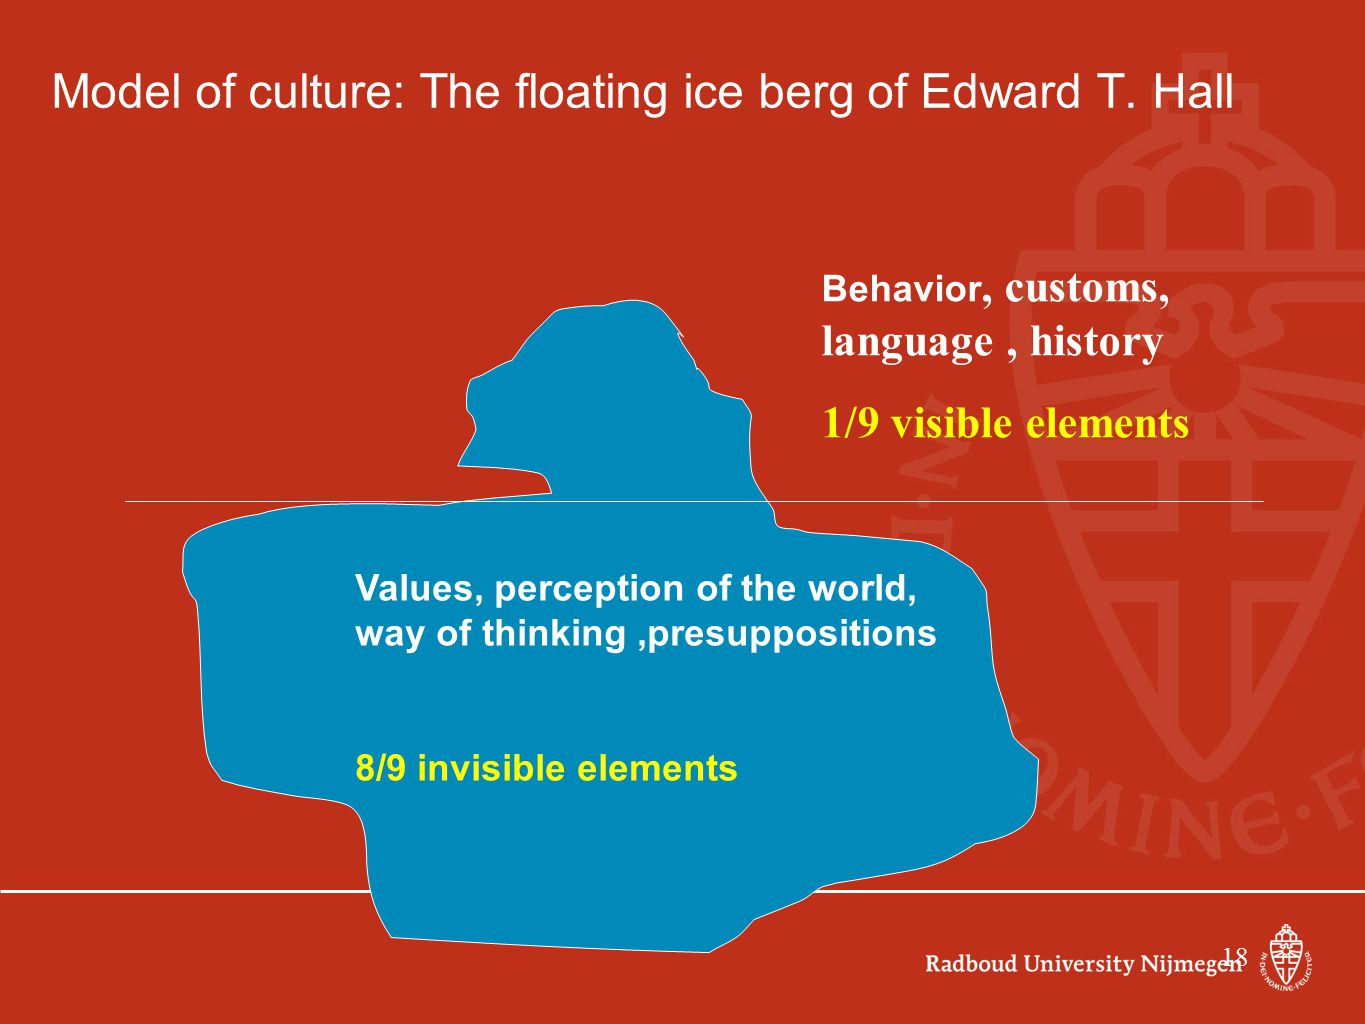 Model of culture: The floating ice berg of Edward T. Hall